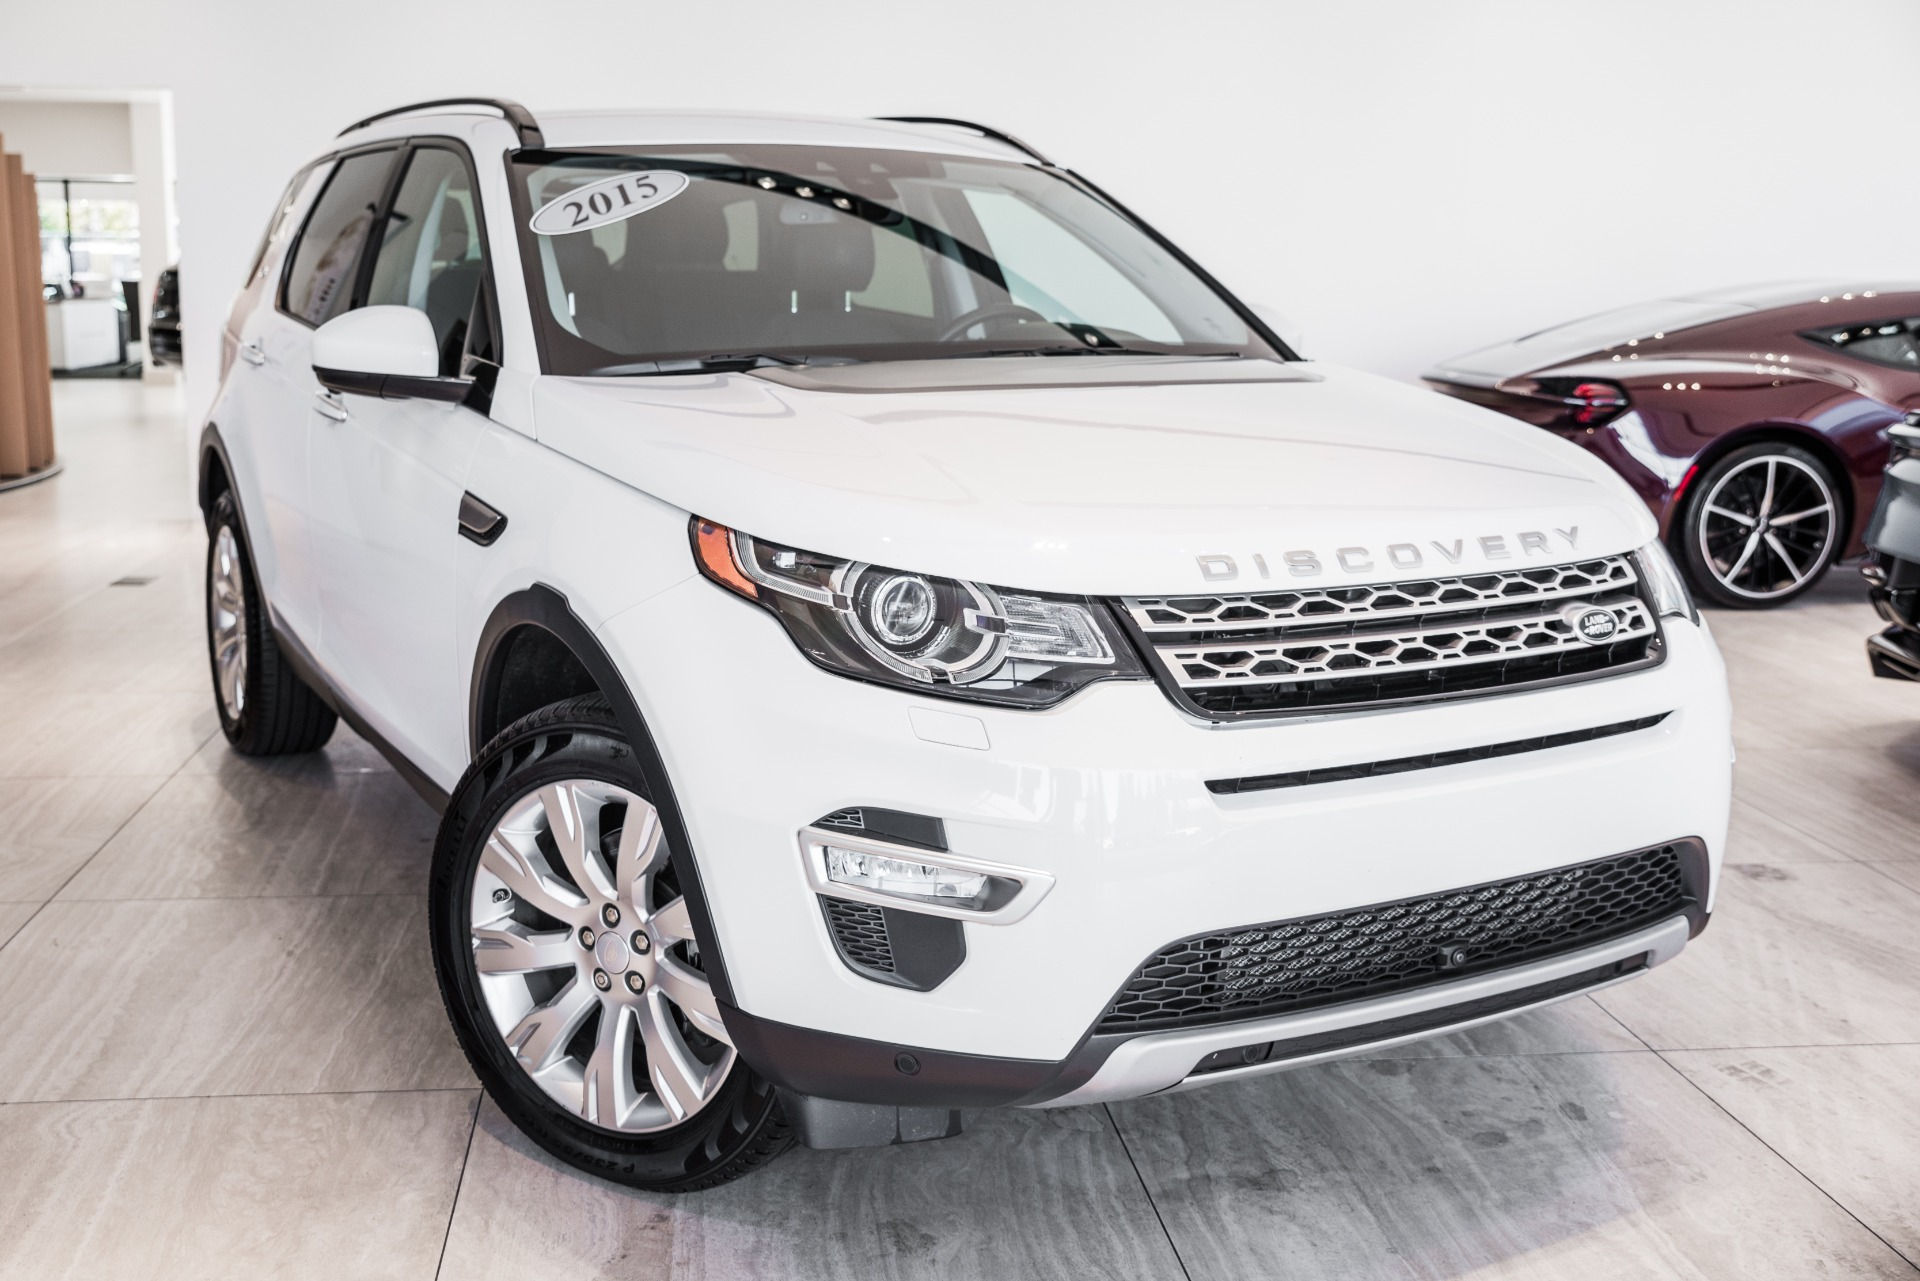 2015 Land Rover Discovery Sport Hse Lux Stock 8n067567e For Sale Near Vienna Va Va Land Rover Dealer